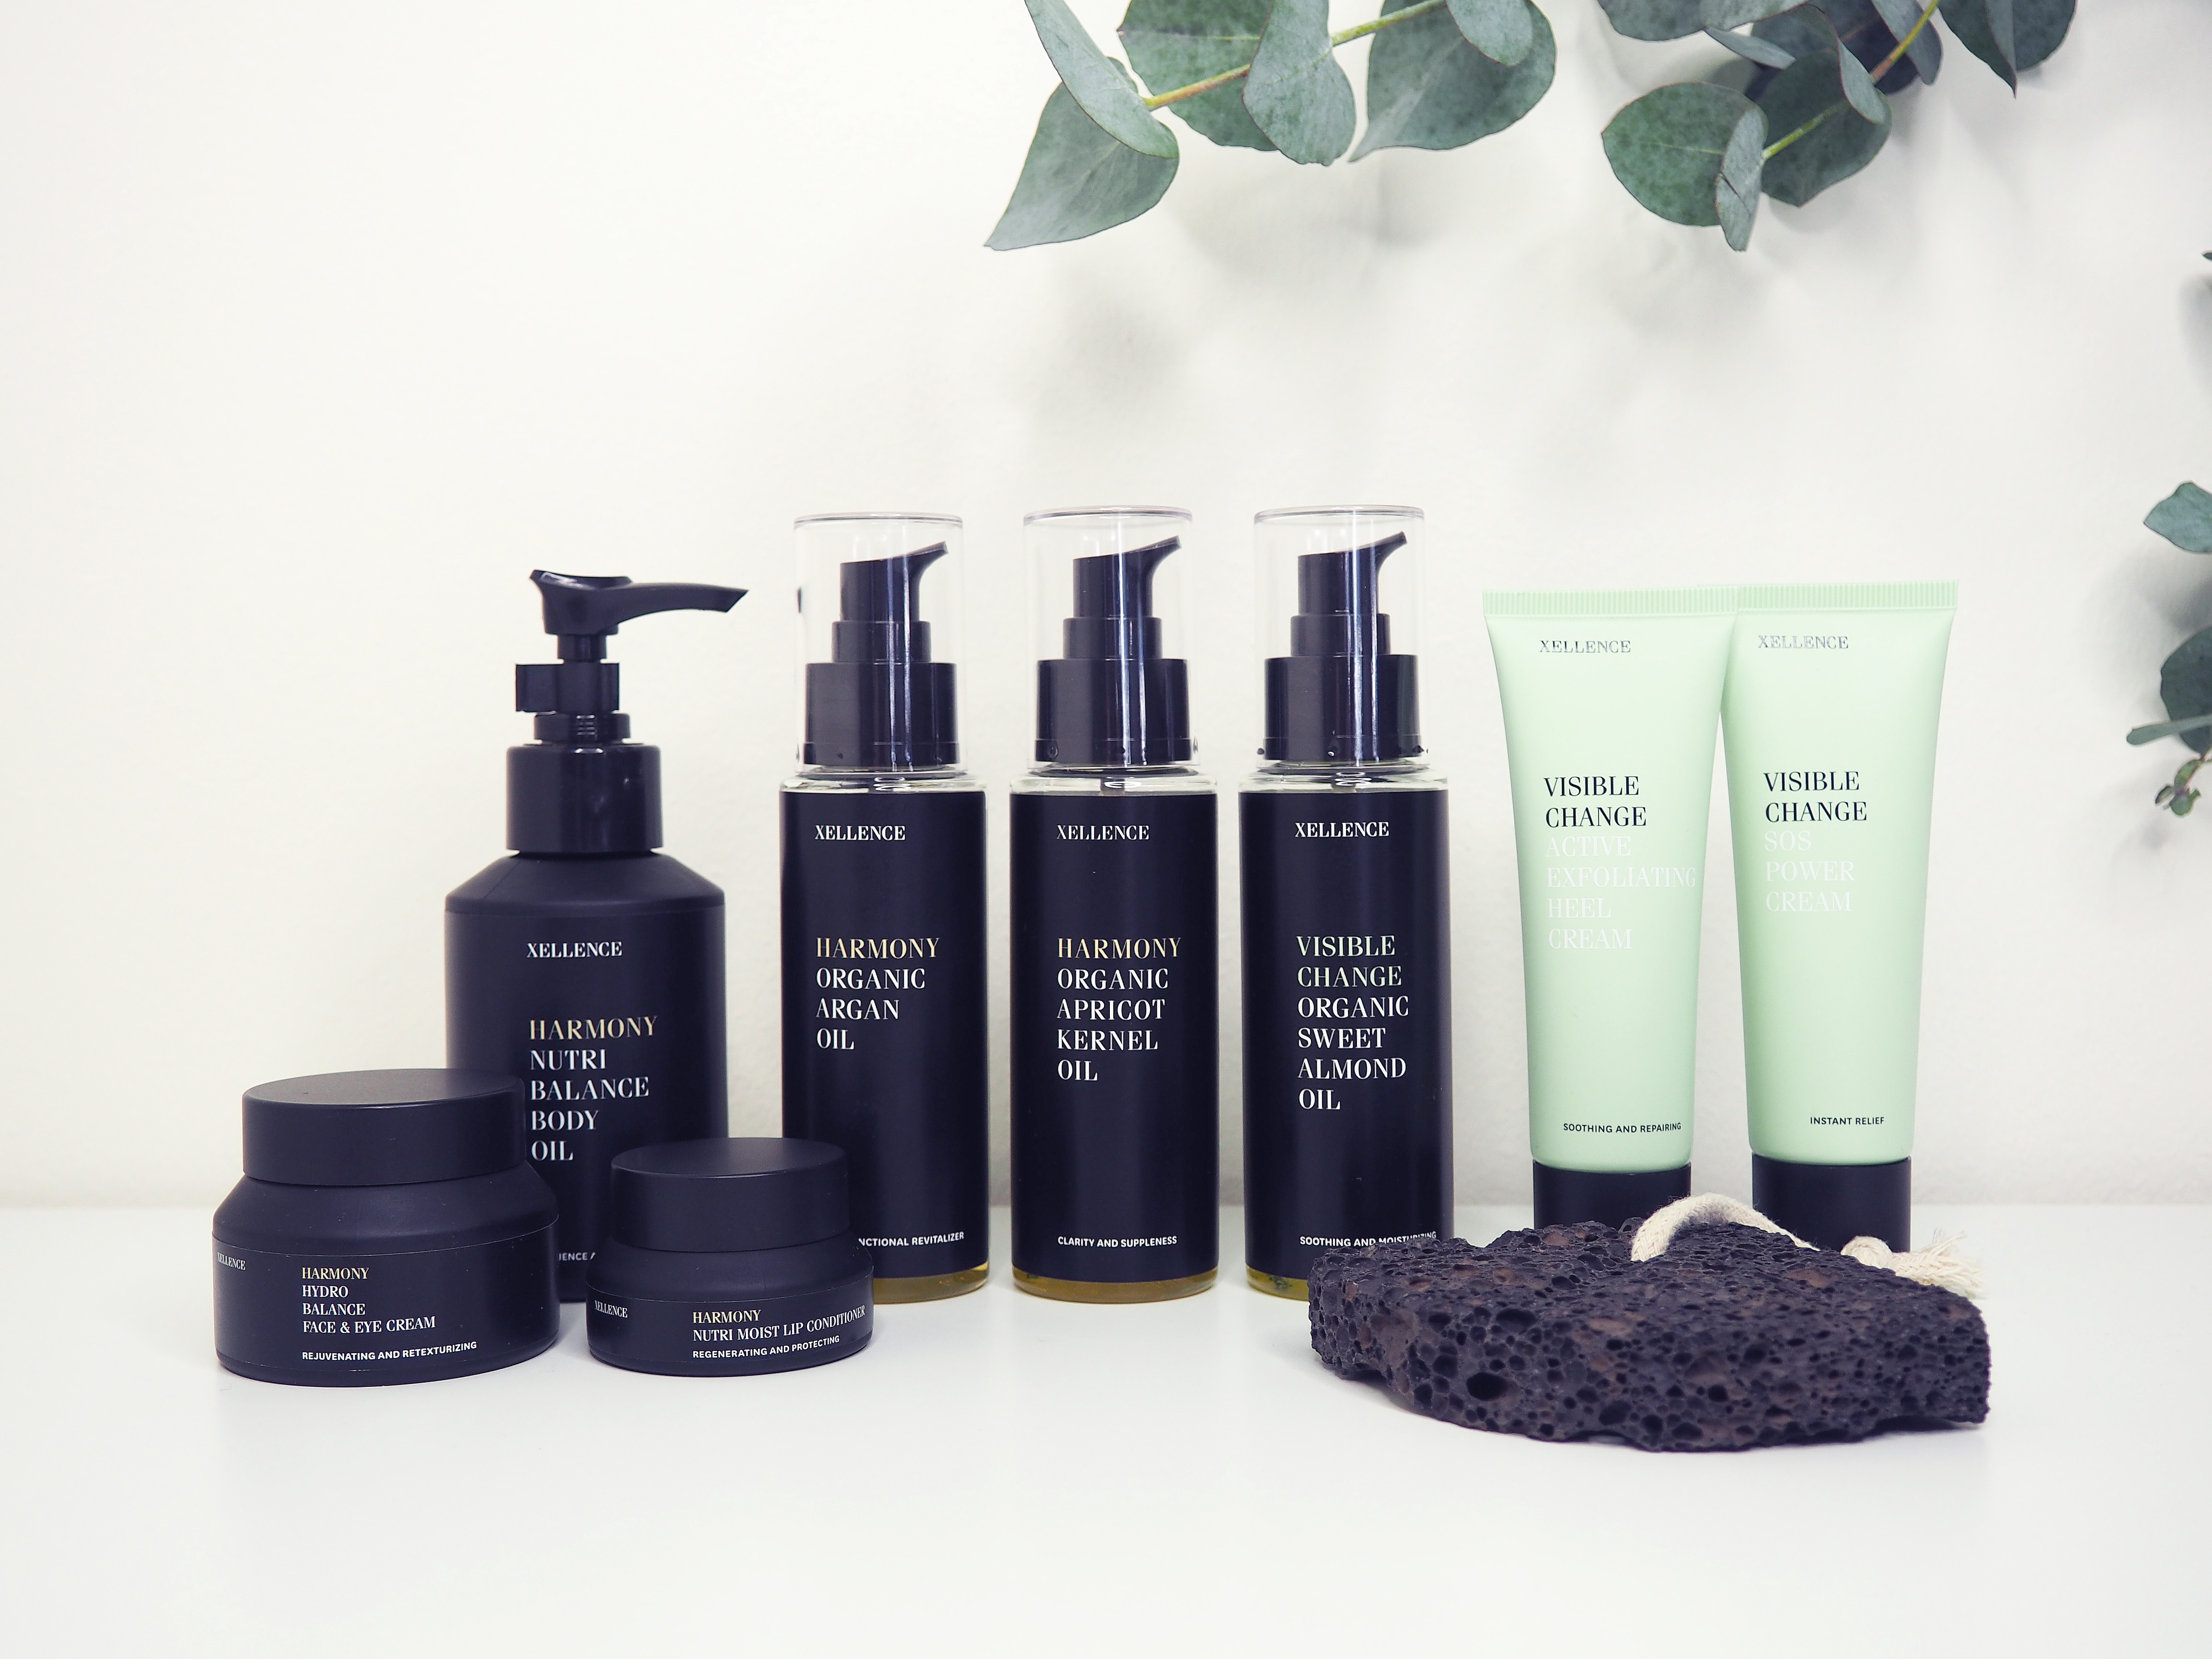 Xellence beautyproducts